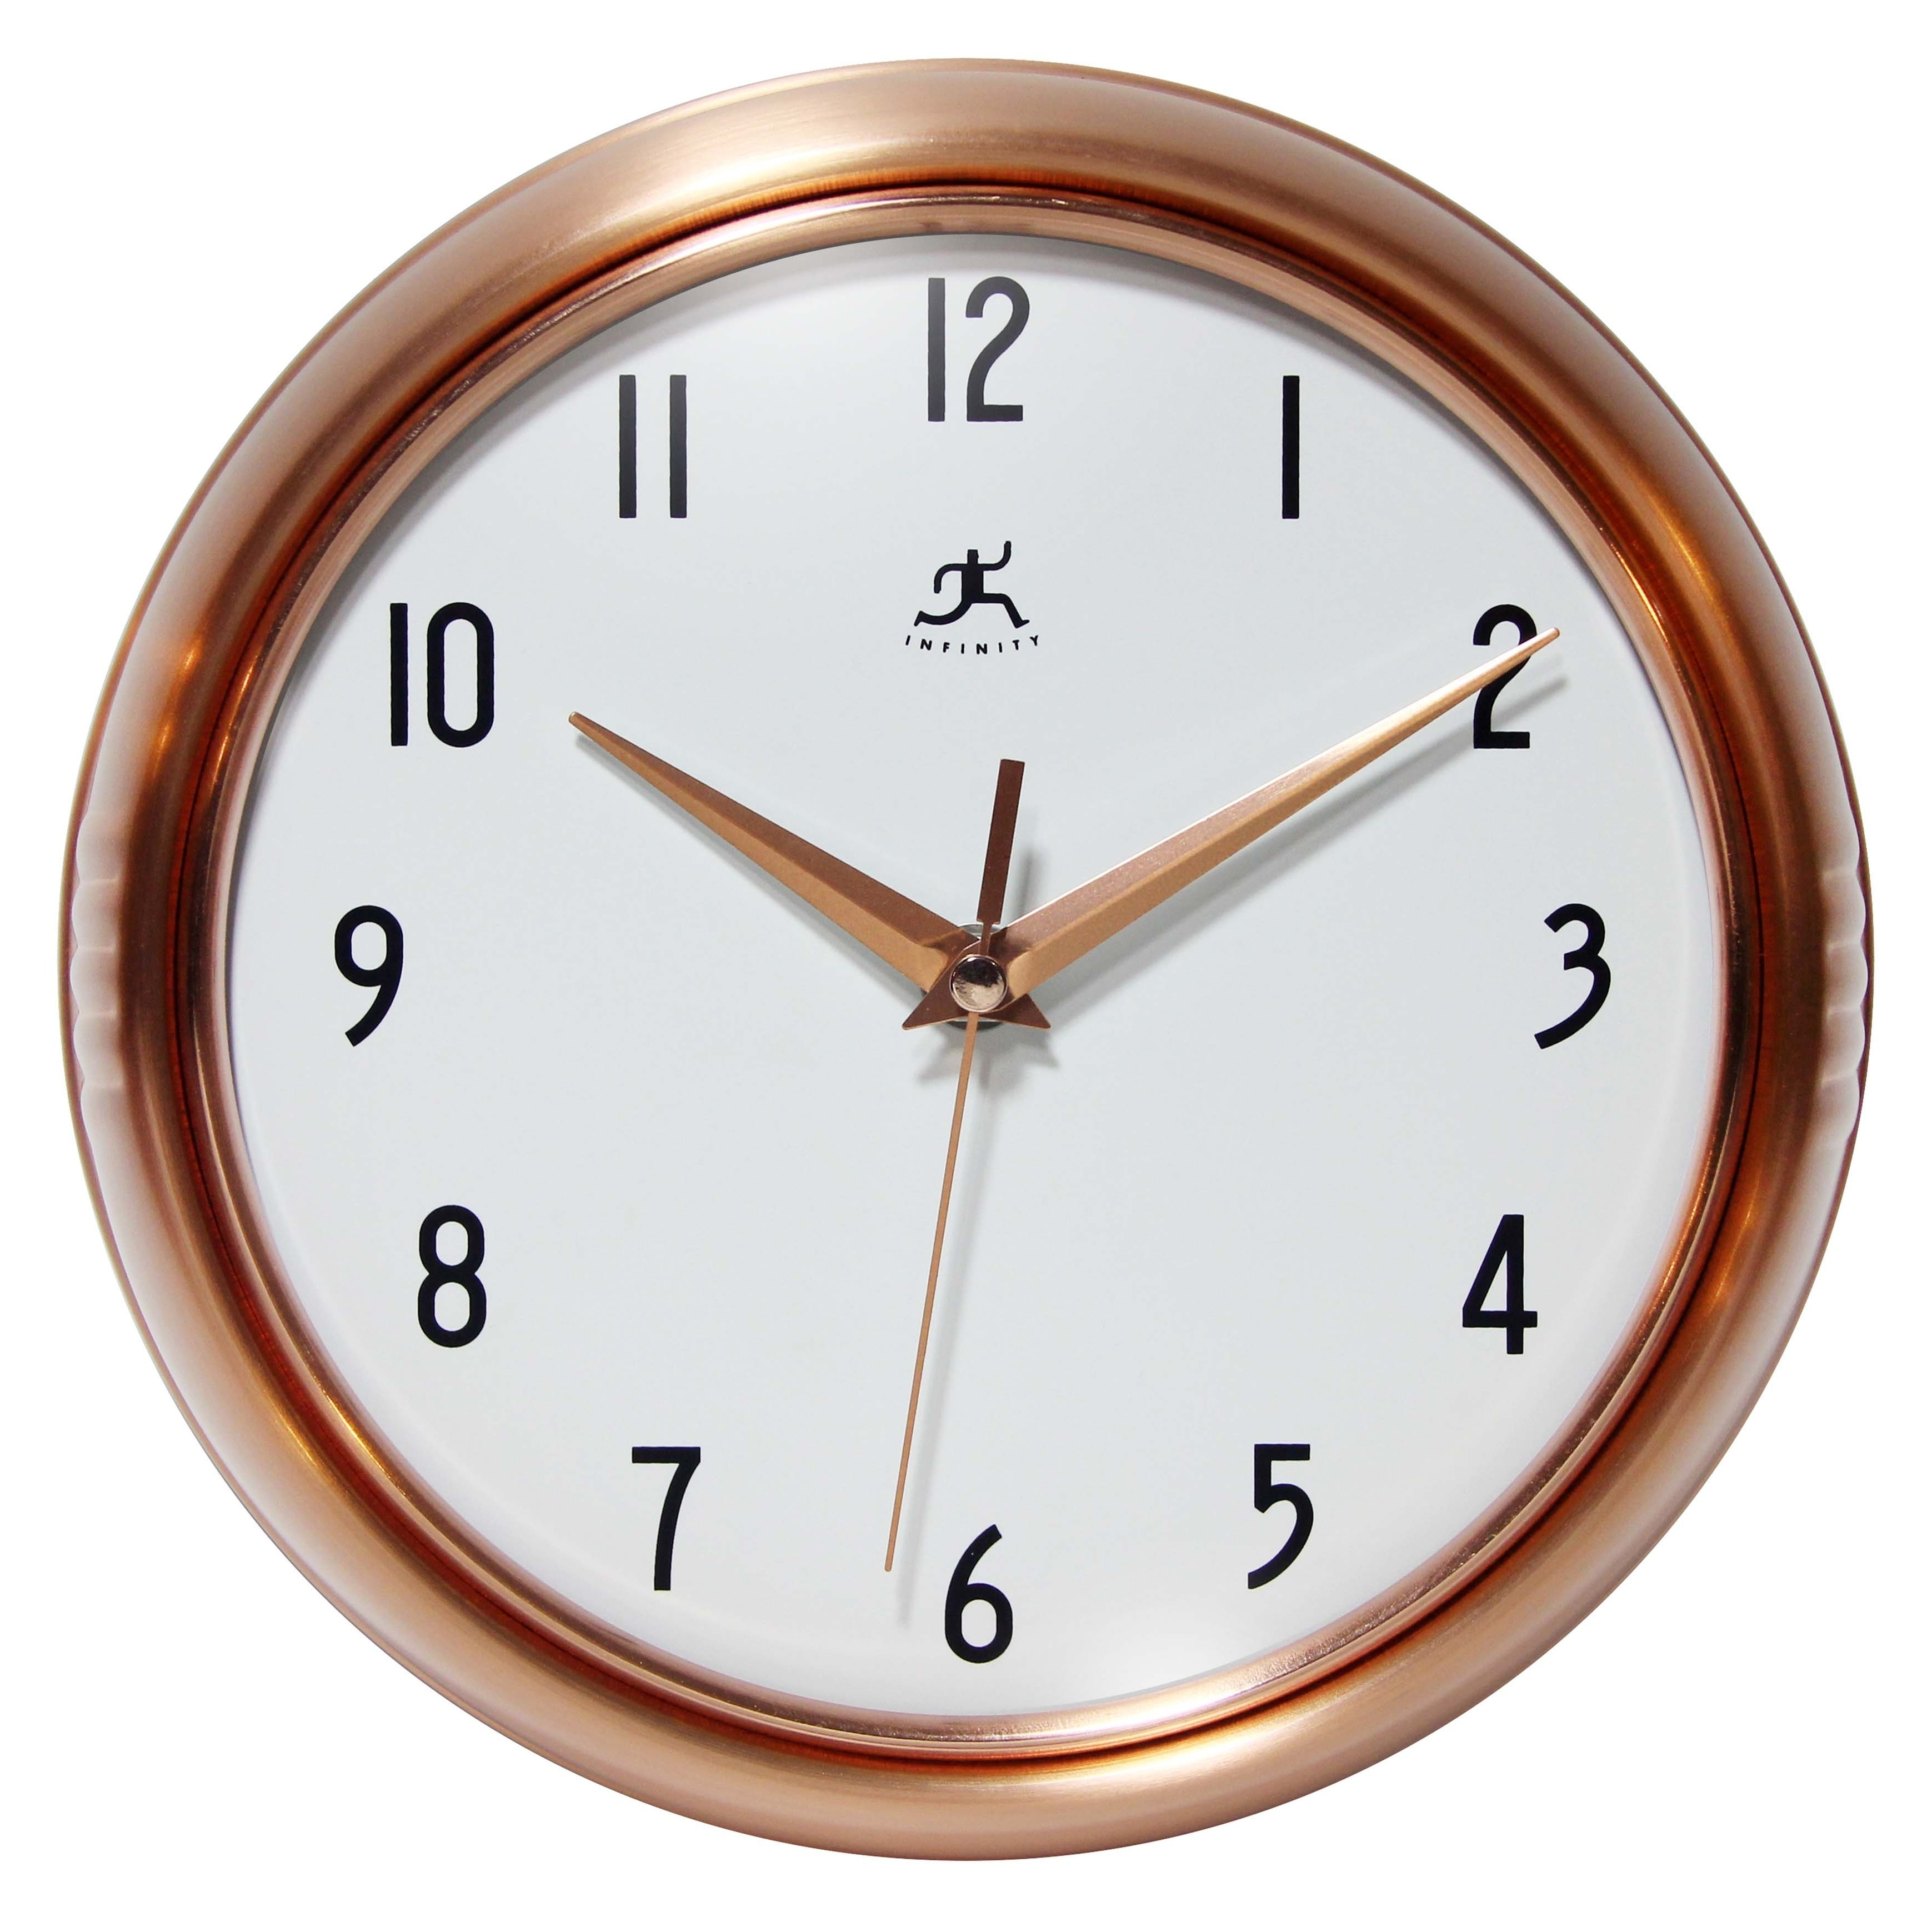 9.5 inch Brushed Copper Wall Clock Retro by Infinity Inst...